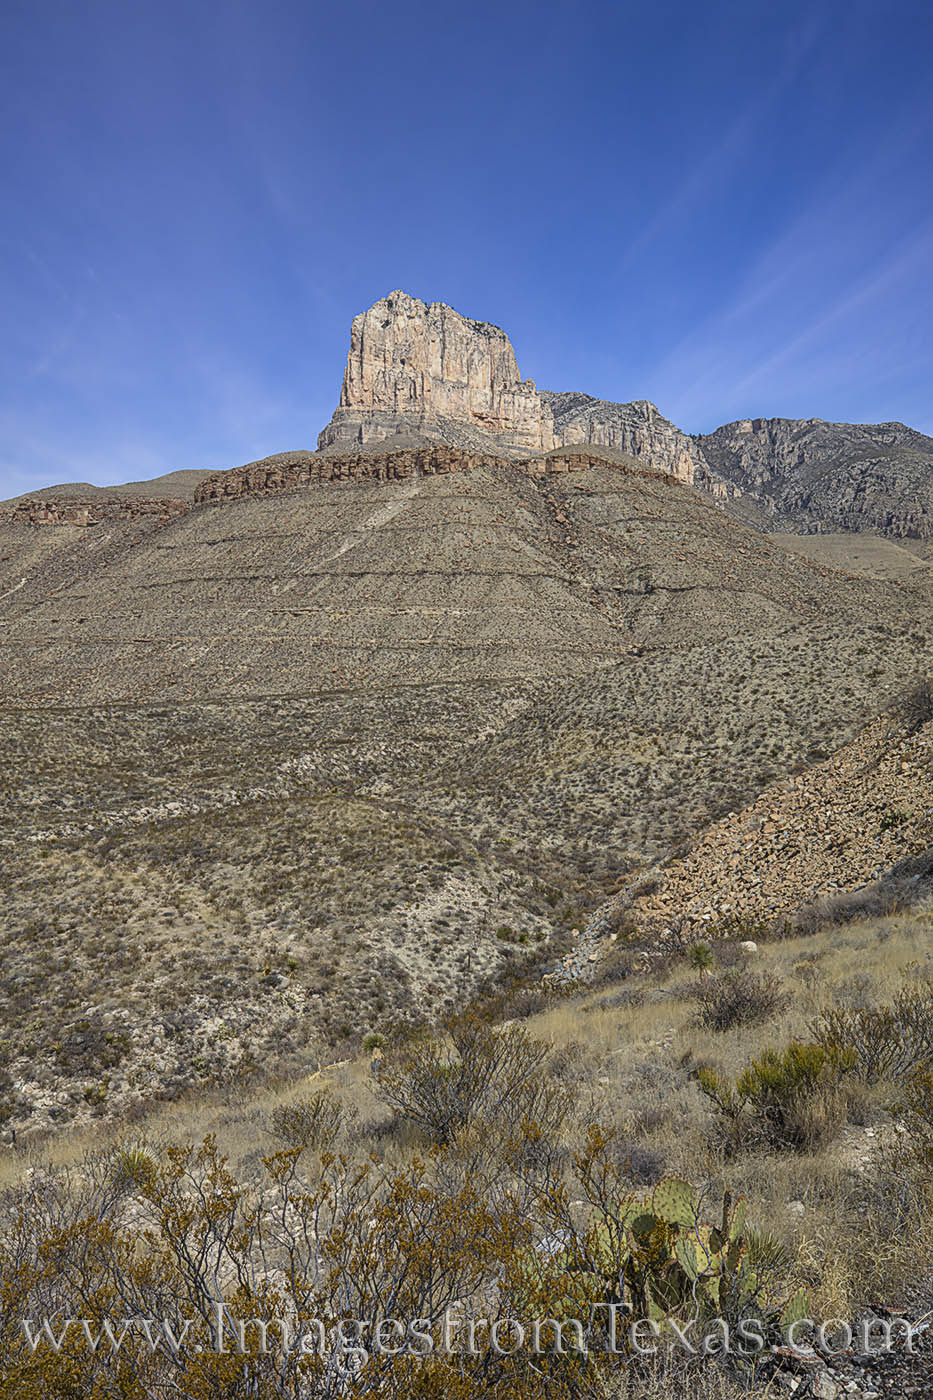 el capitan, guadalupe mountians, texas mountains, west texas, texas landscapes, chihuahuan desert, national park, texas parks, photo